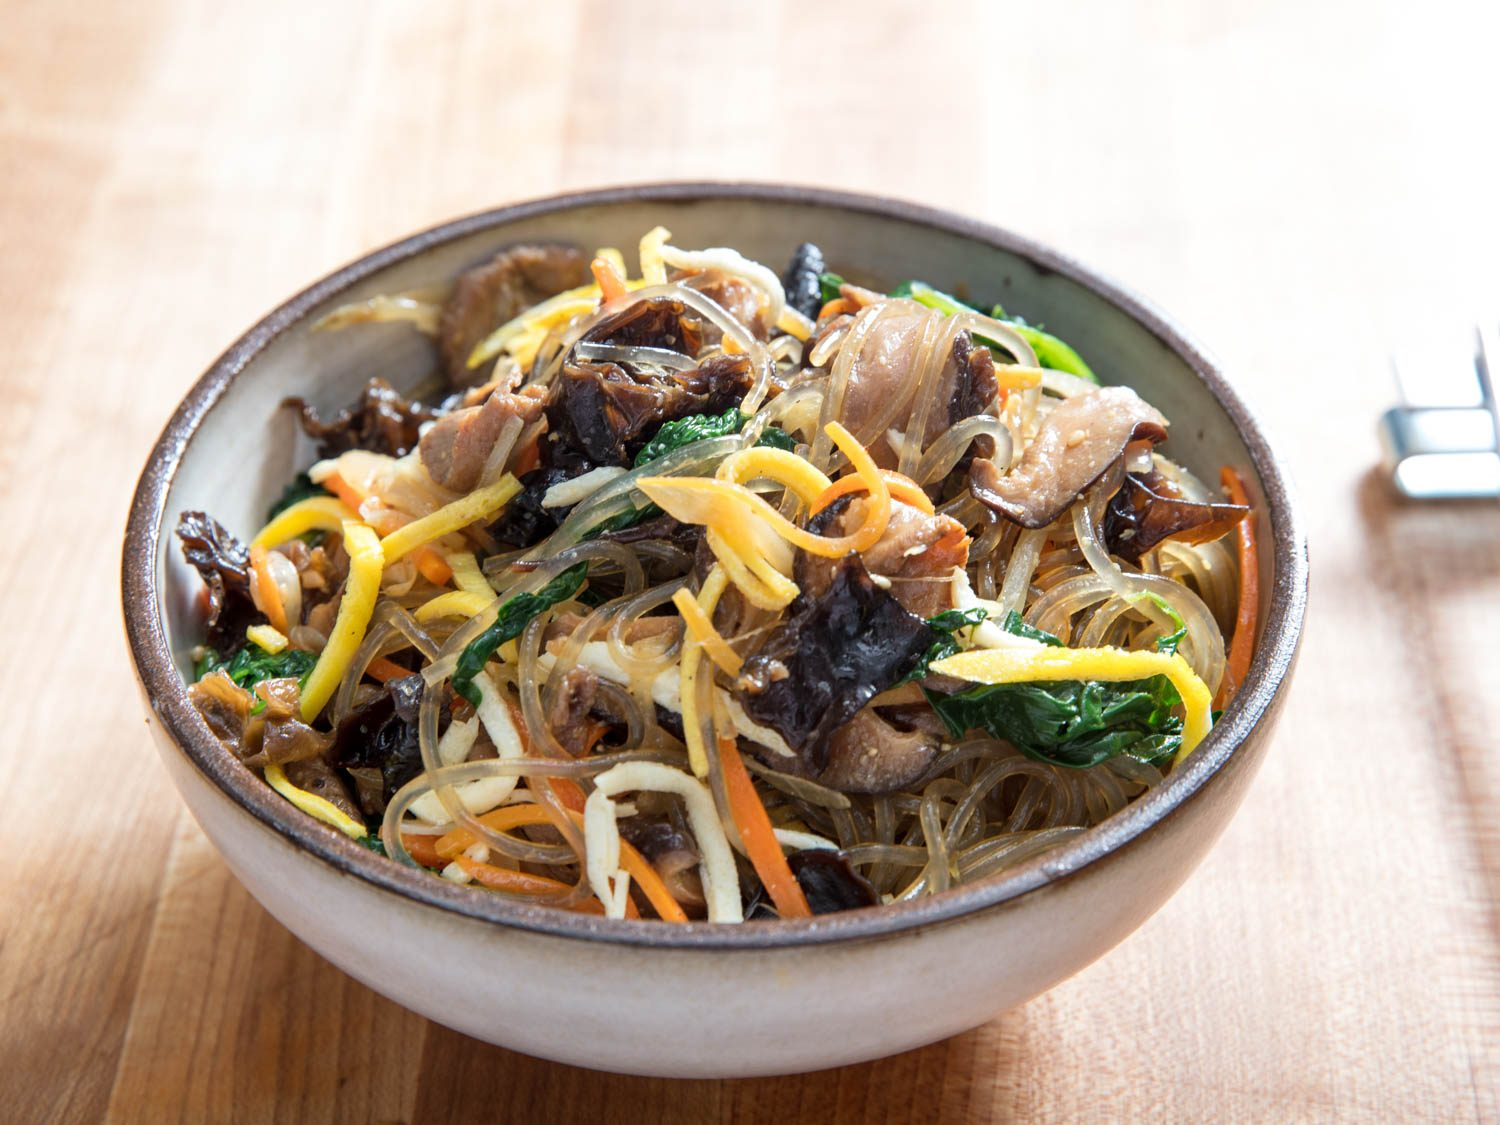 Japchae (Korean Glass Noodles With Pork and Vegetables)